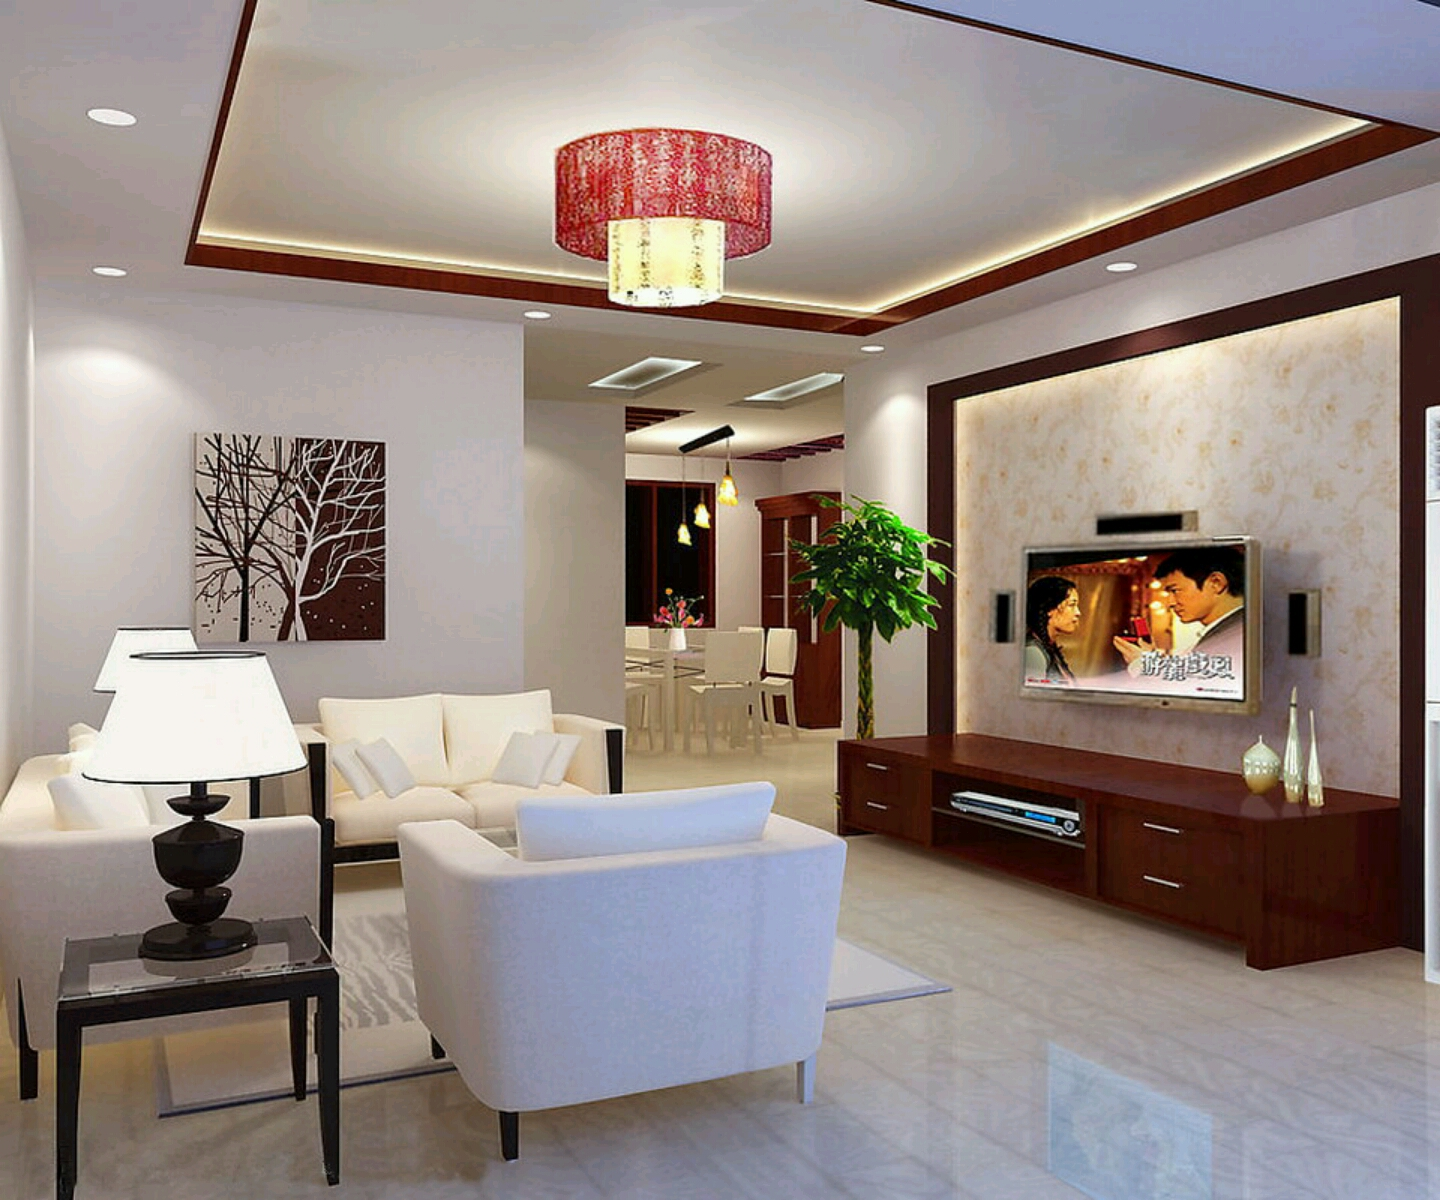 Cheap Ceiling Ideas Living Room Decorating With Black Sofas Modern Interior Decoration Rooms Designs